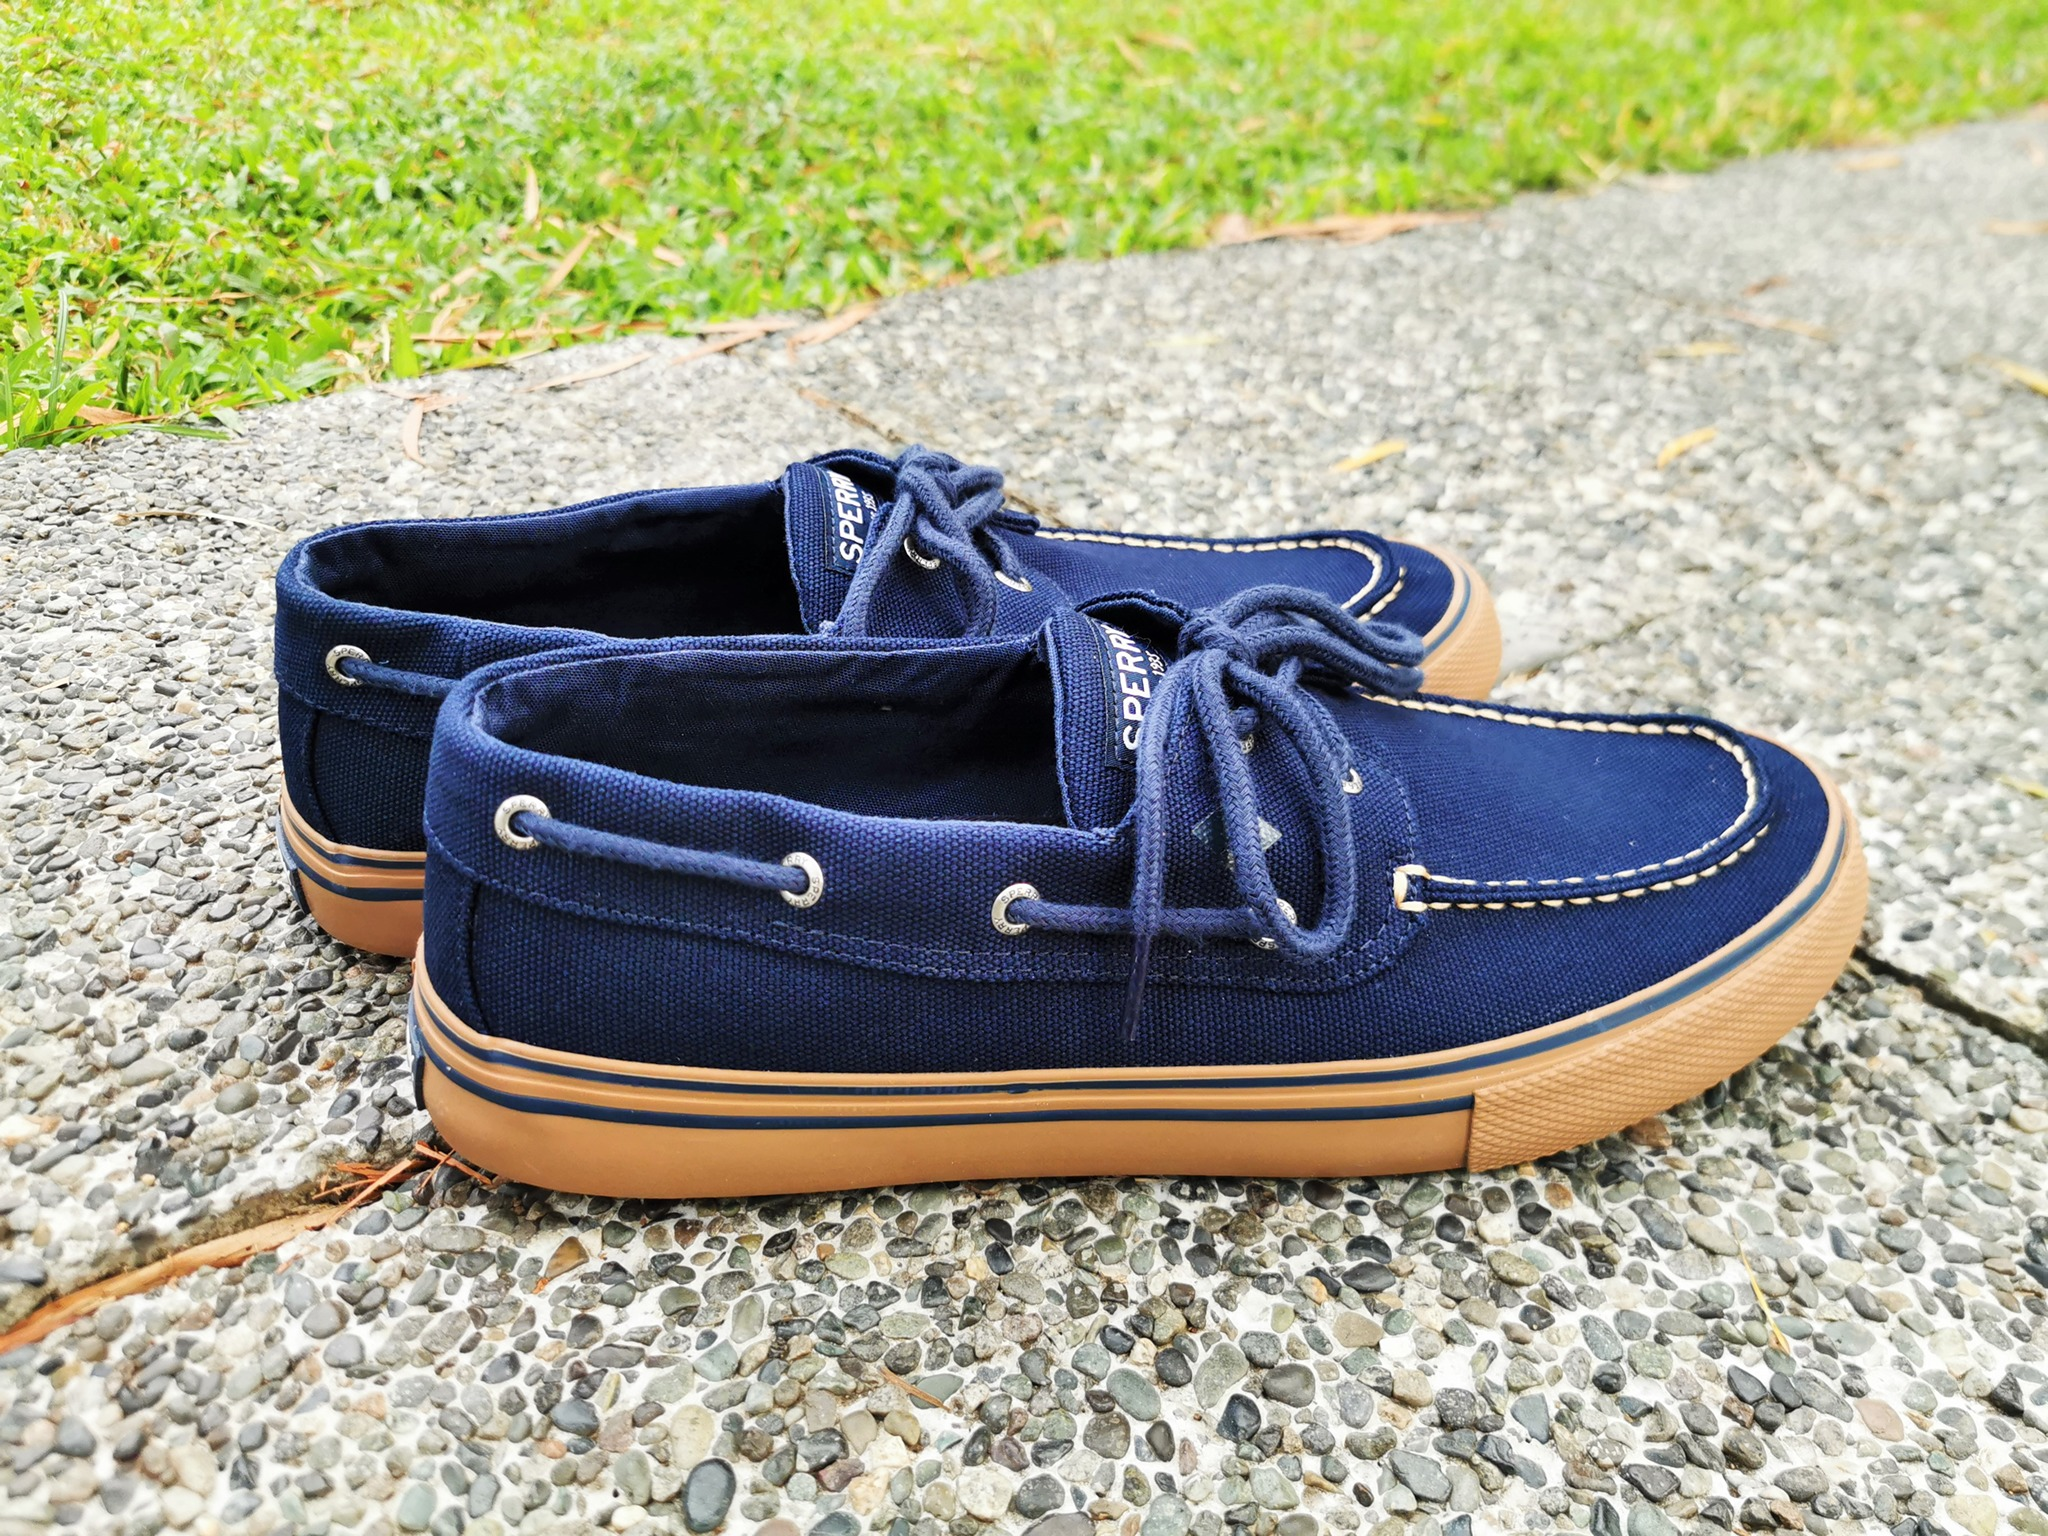 Sperry Top-Sider Bahama Storm Navy is